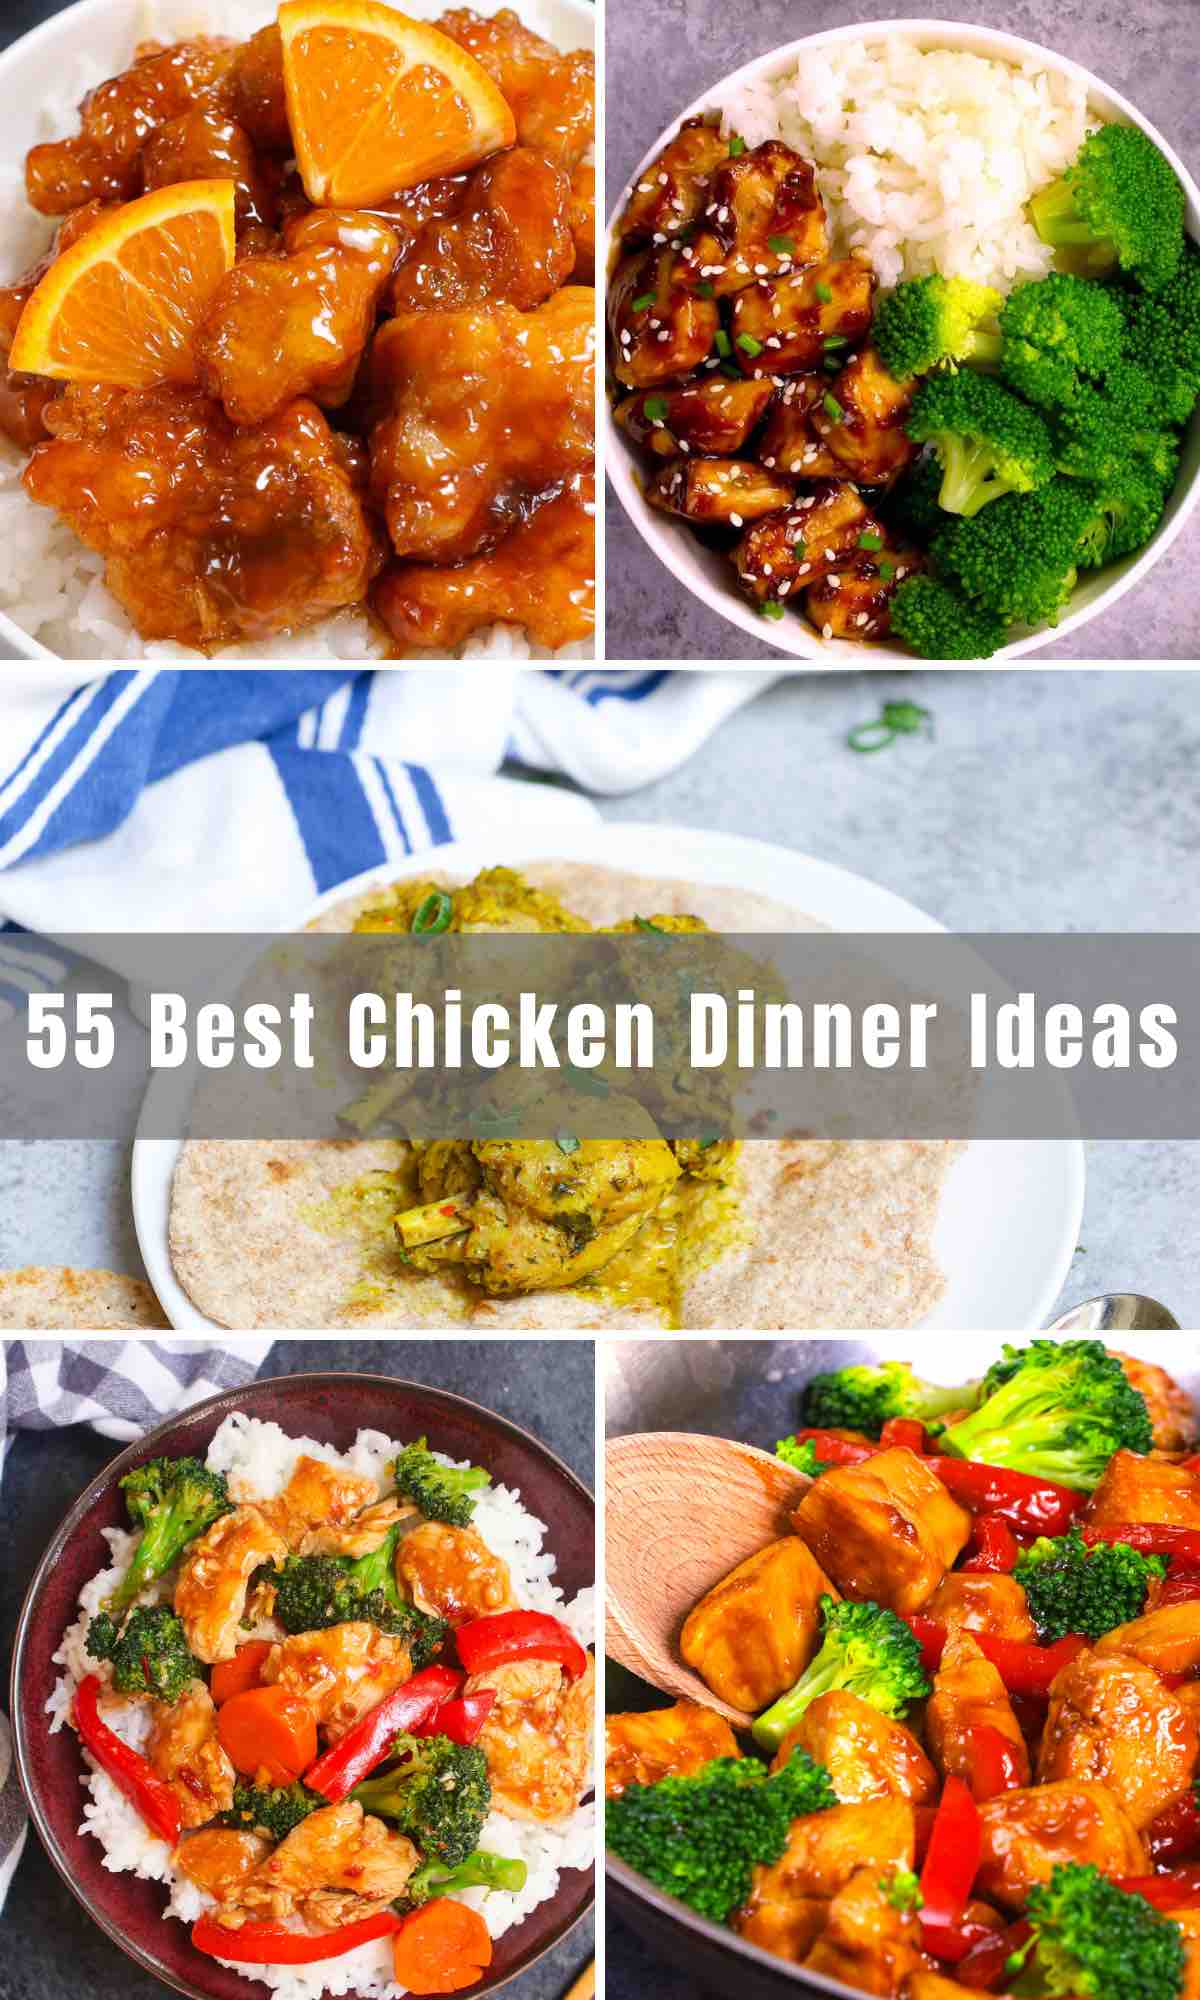 Chicken is a healthy and budget-friendly option for dinner. We've rounded up 55 Best Chicken Dinner Ideas for you to easily incorporate chicken breasts, chicken thighs, or chicken wings into your supper recipes. From chicken noodle soup to chicken tacos, and teriyaki chicken, so many delicious meals are here for you!